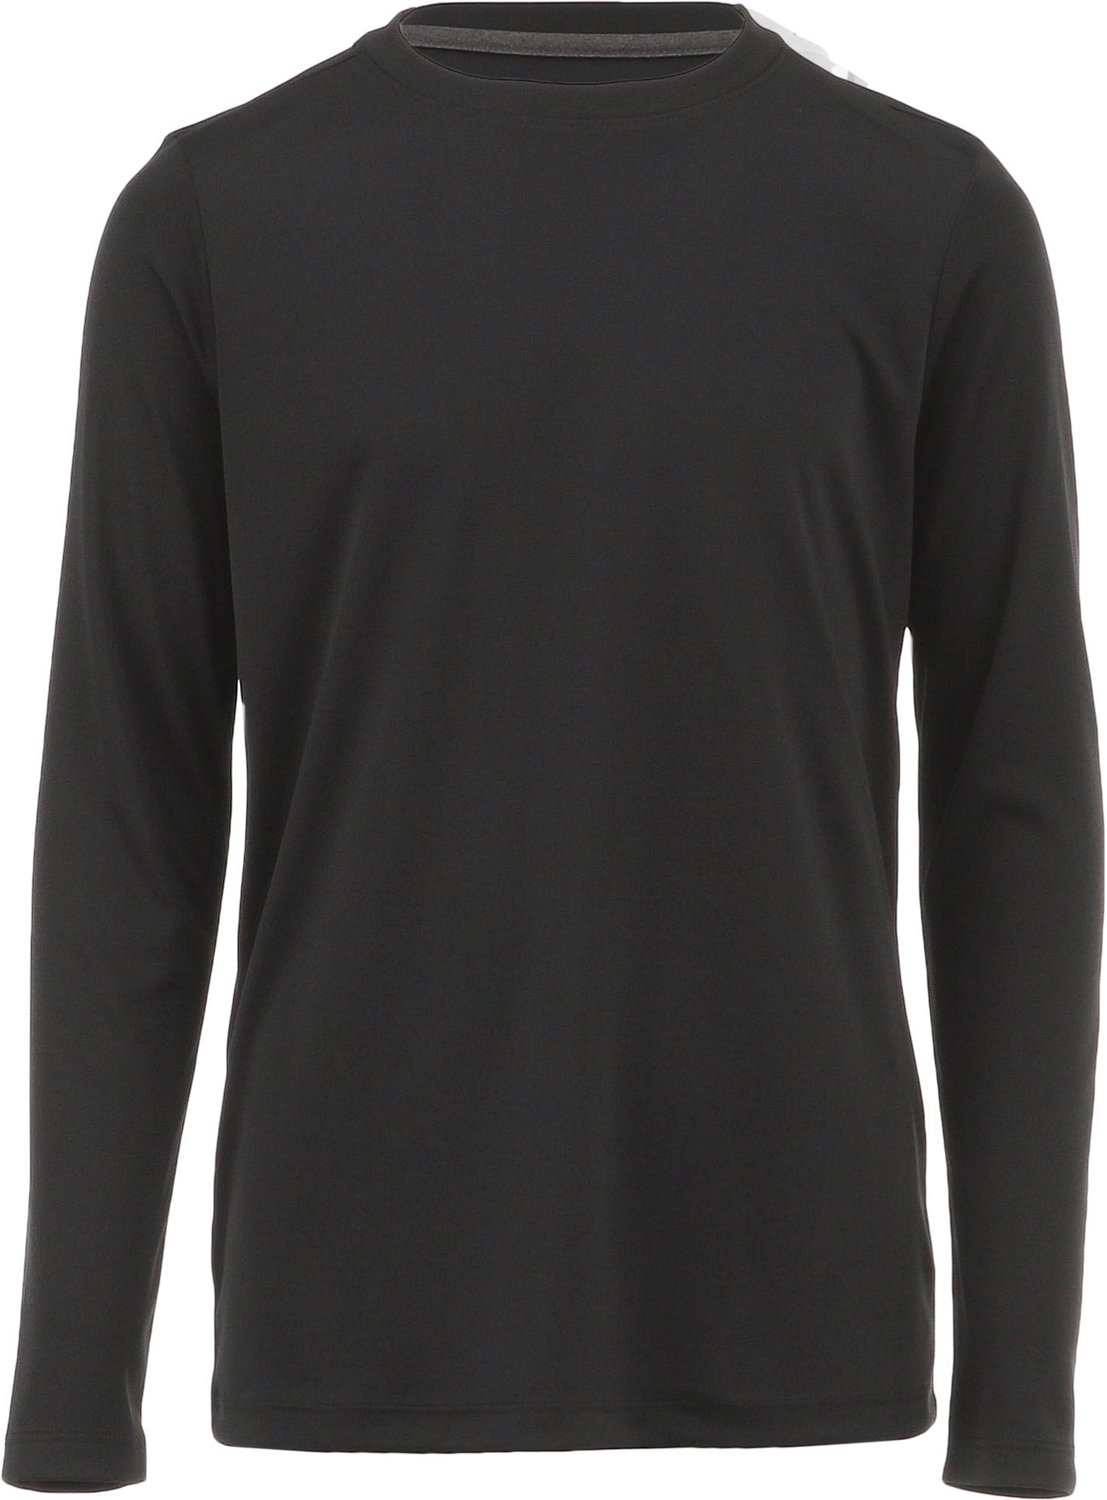 35f10e63 Display product reviews for BCG Boys' Solid Turbo Long Sleeve T-shirt